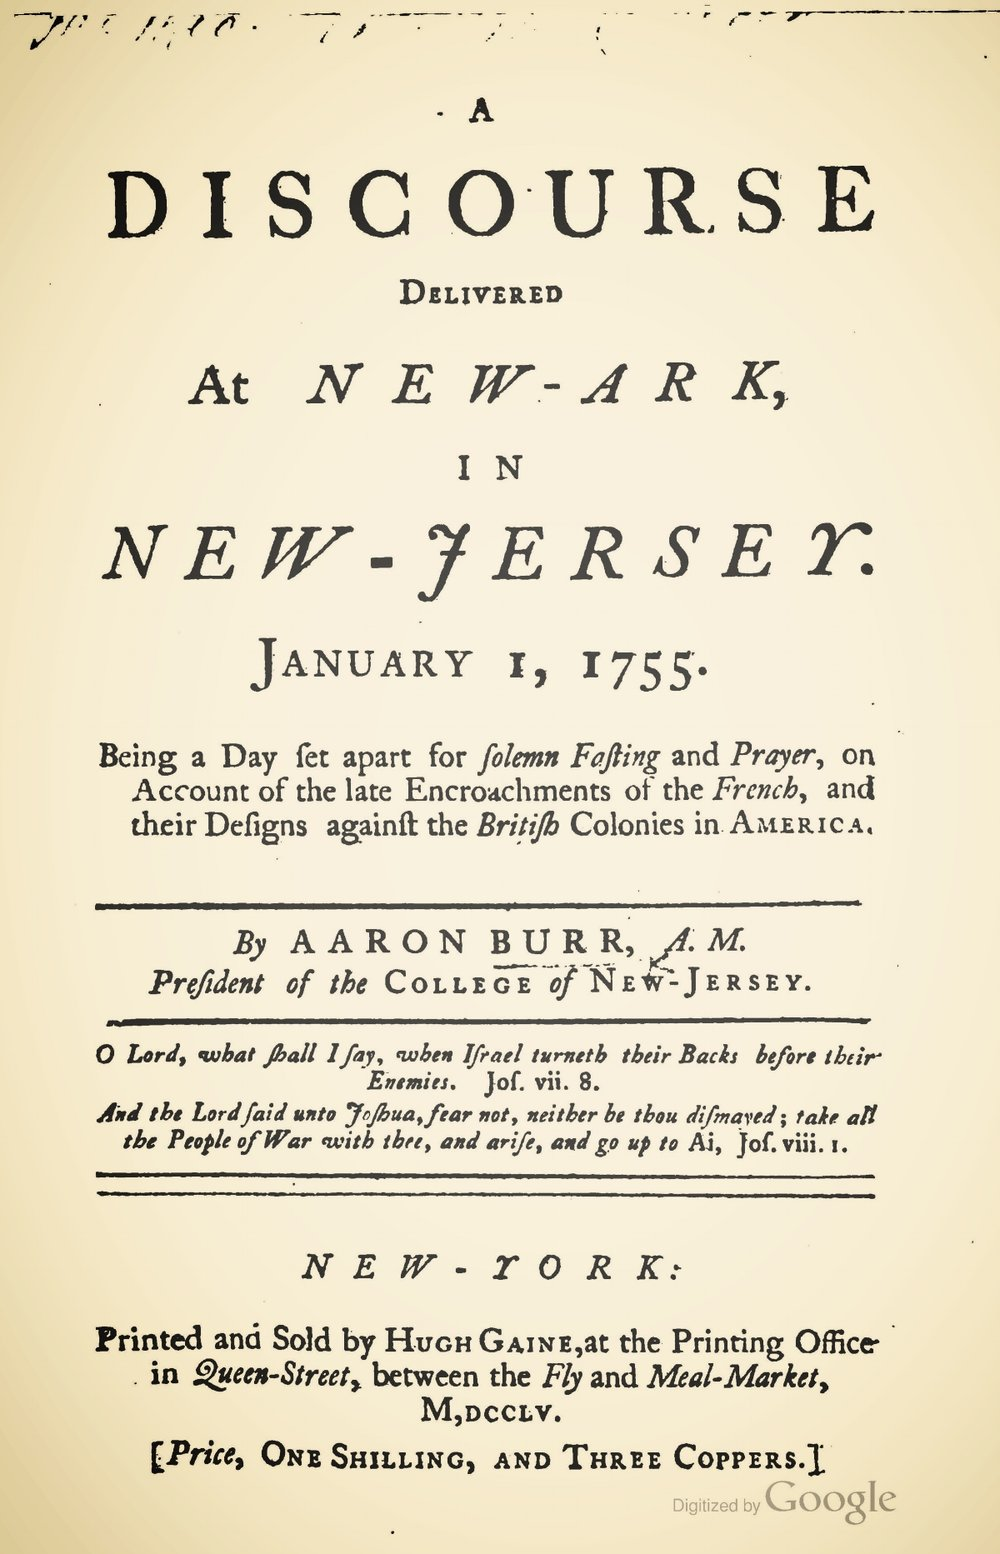 Burr, Sr., Aaron, A Discourse Delivered at New-Ark, in New Jersey, January 1, 1755 Title Page.jpg